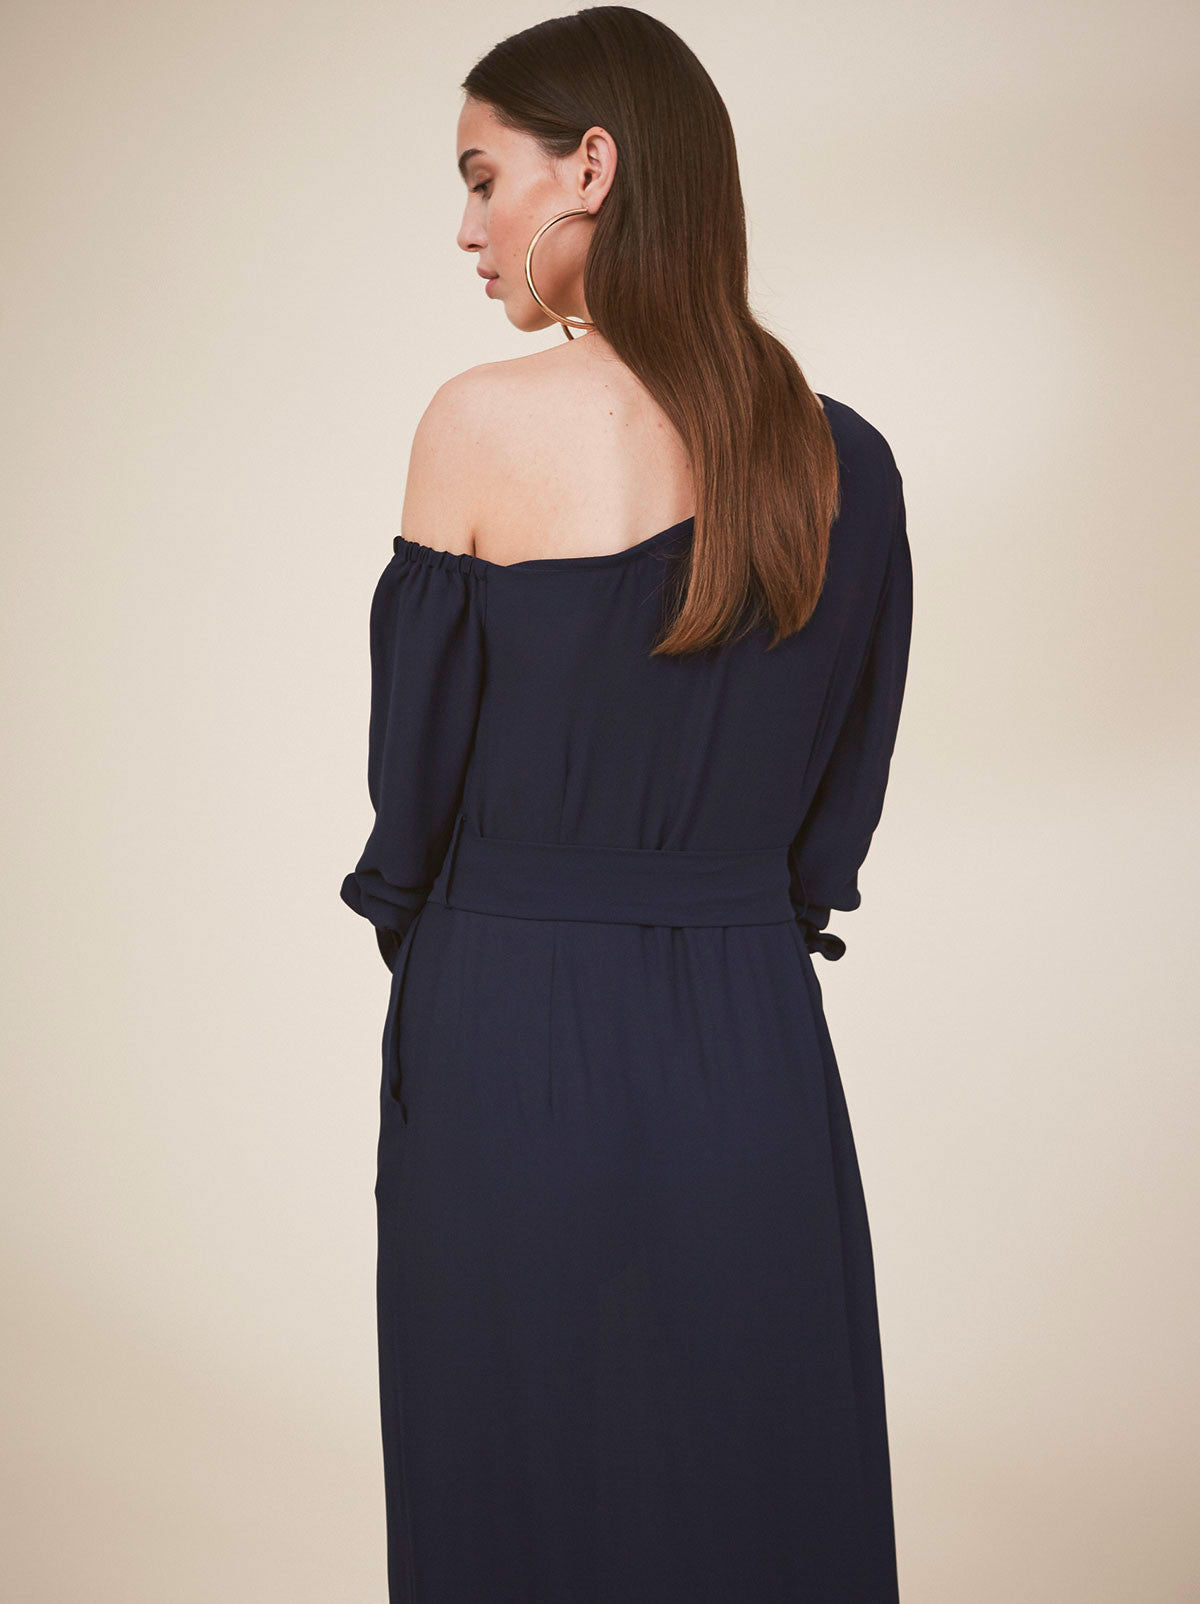 Beryl One Shoulder Dress